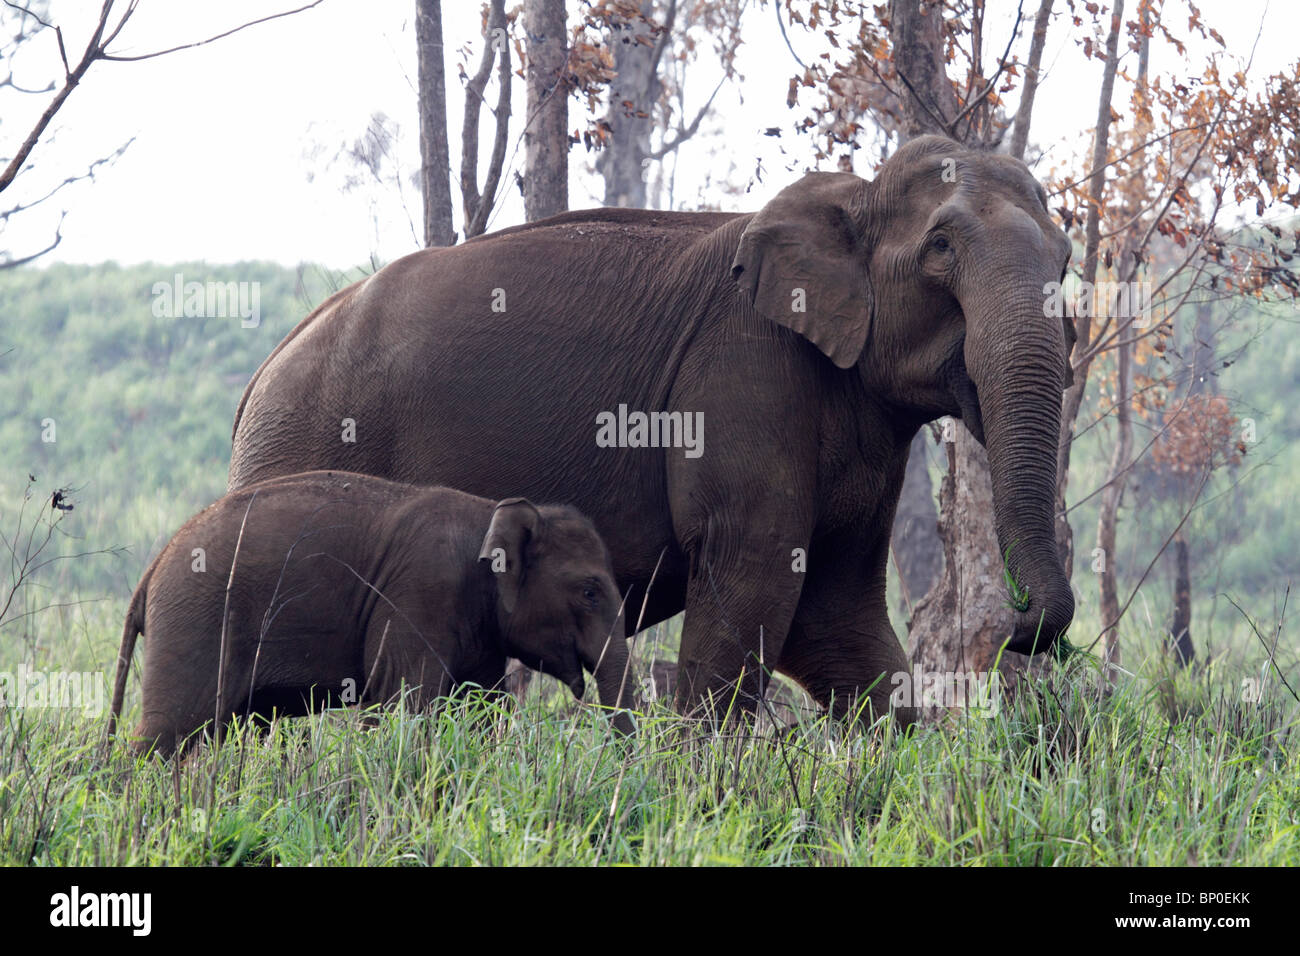 India, Kerala, Periyar National Park. Wild Indian (Asian) elephant mother and calf walking through a forest clearing. - Stock Image